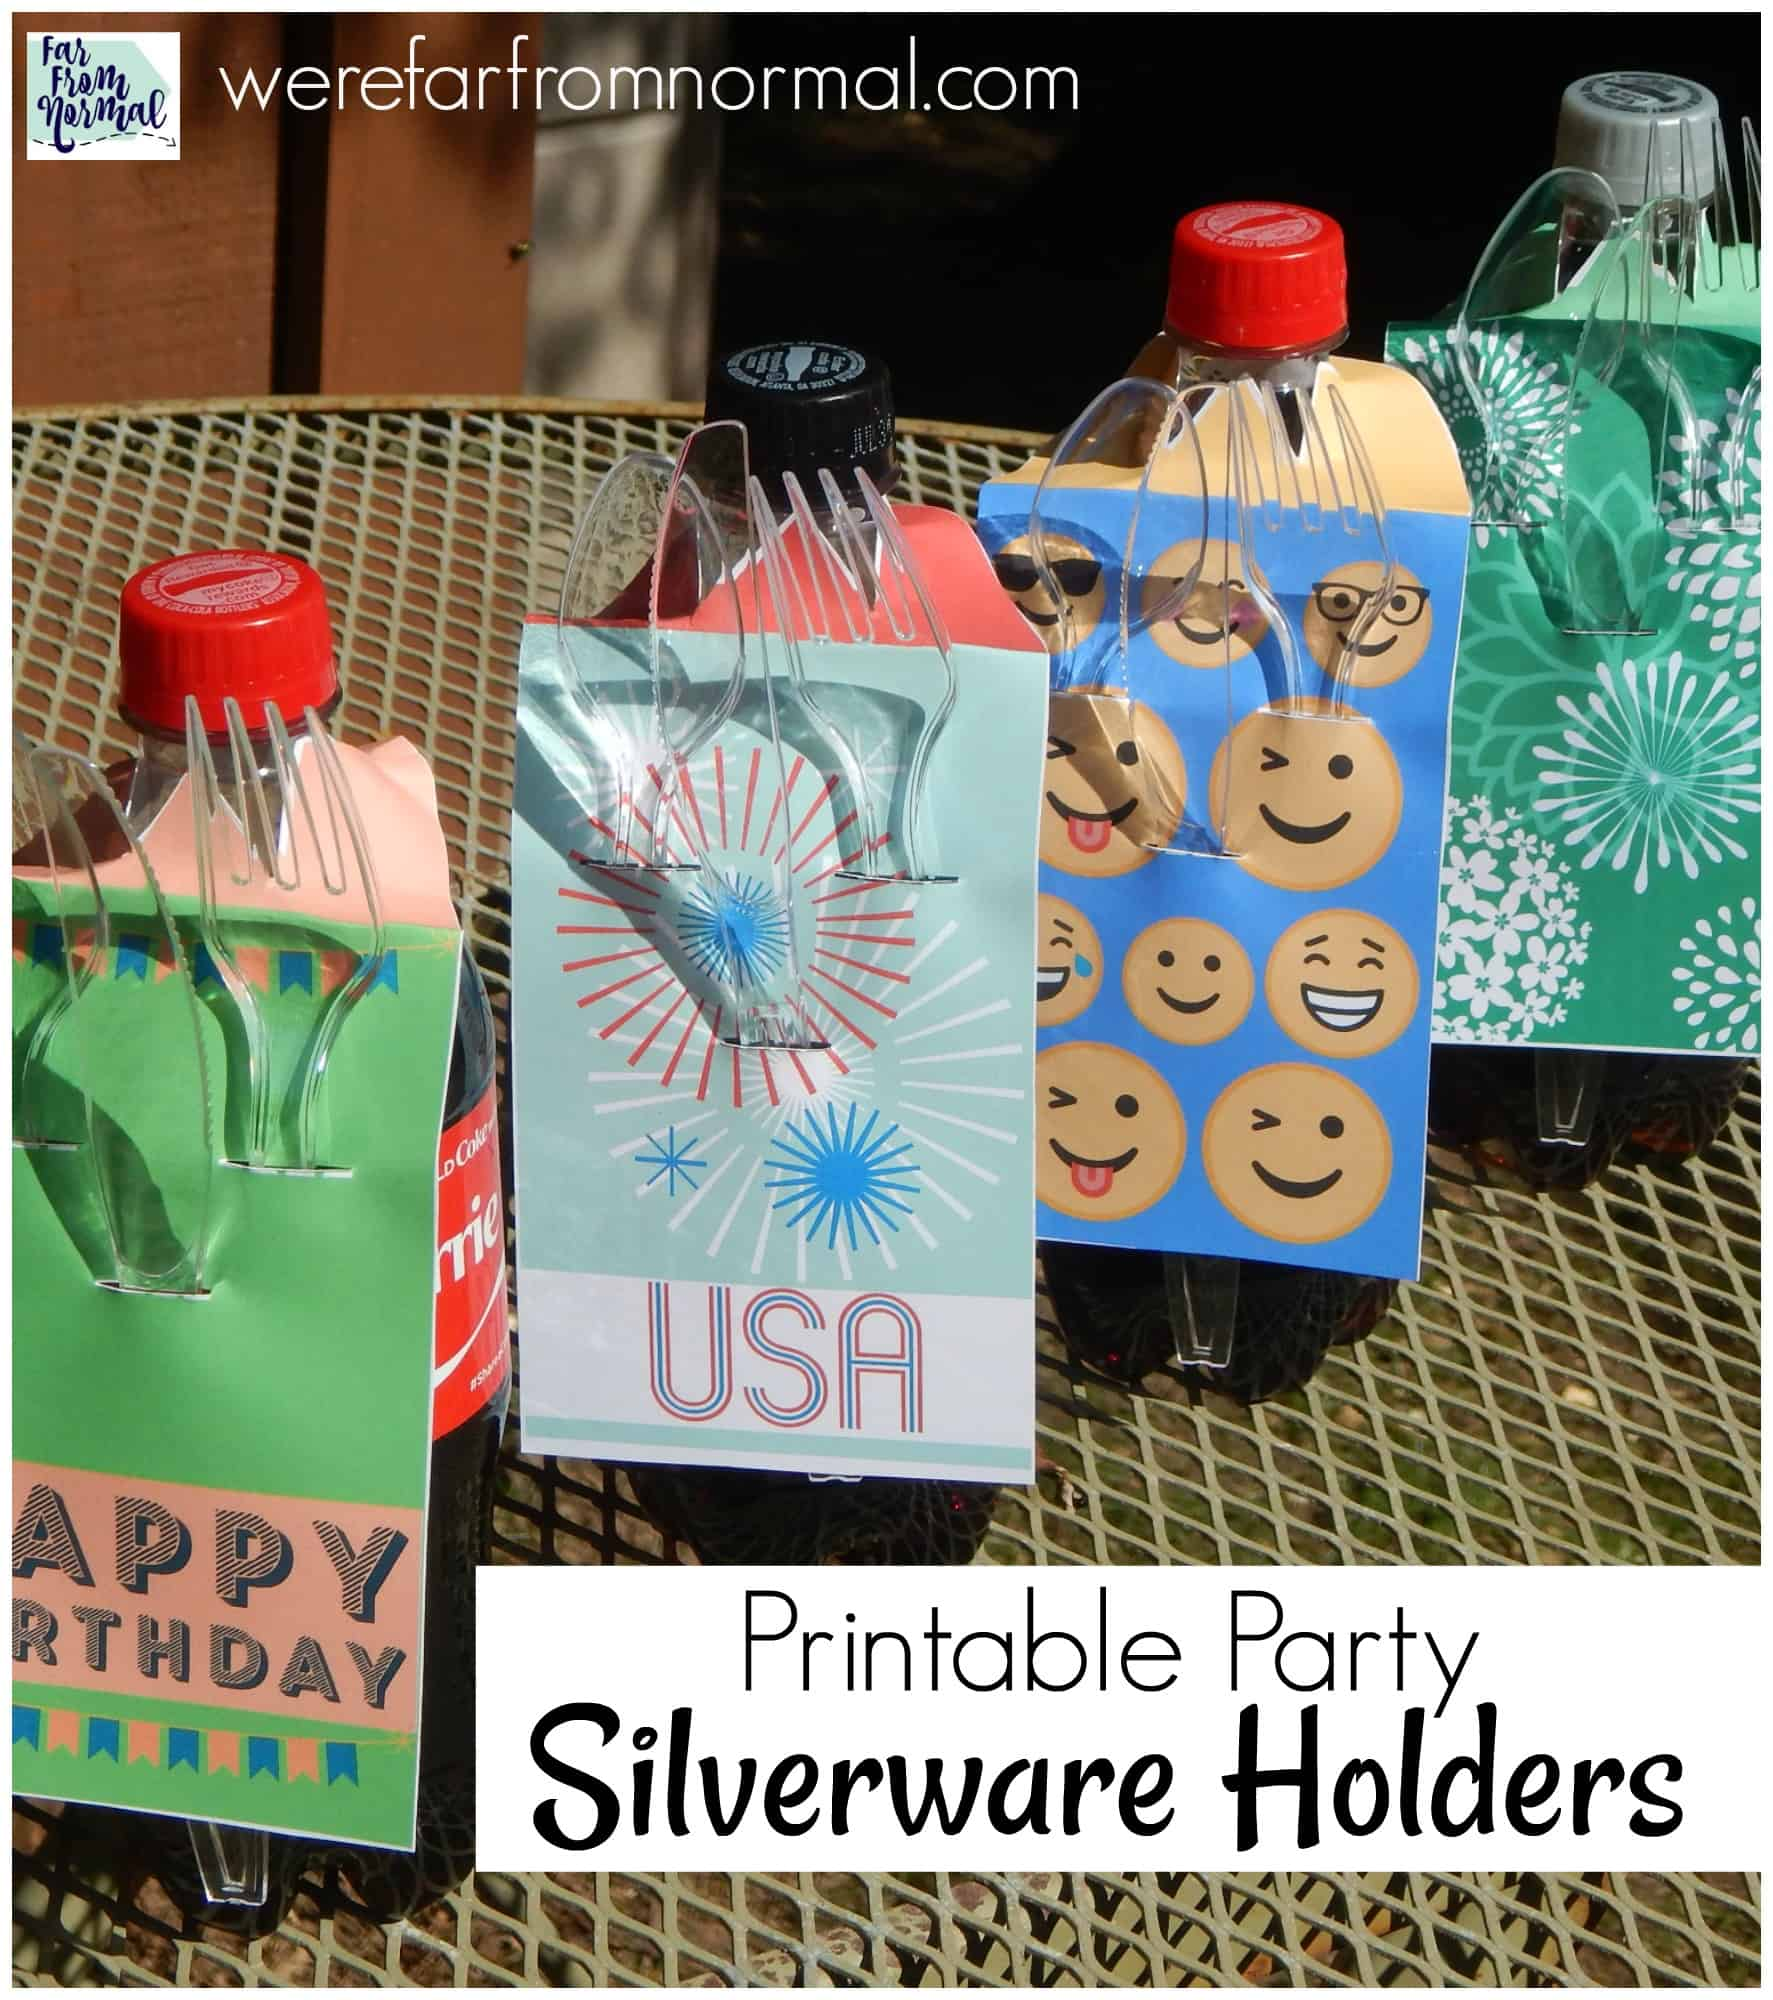 Printable Party Silverware Holders